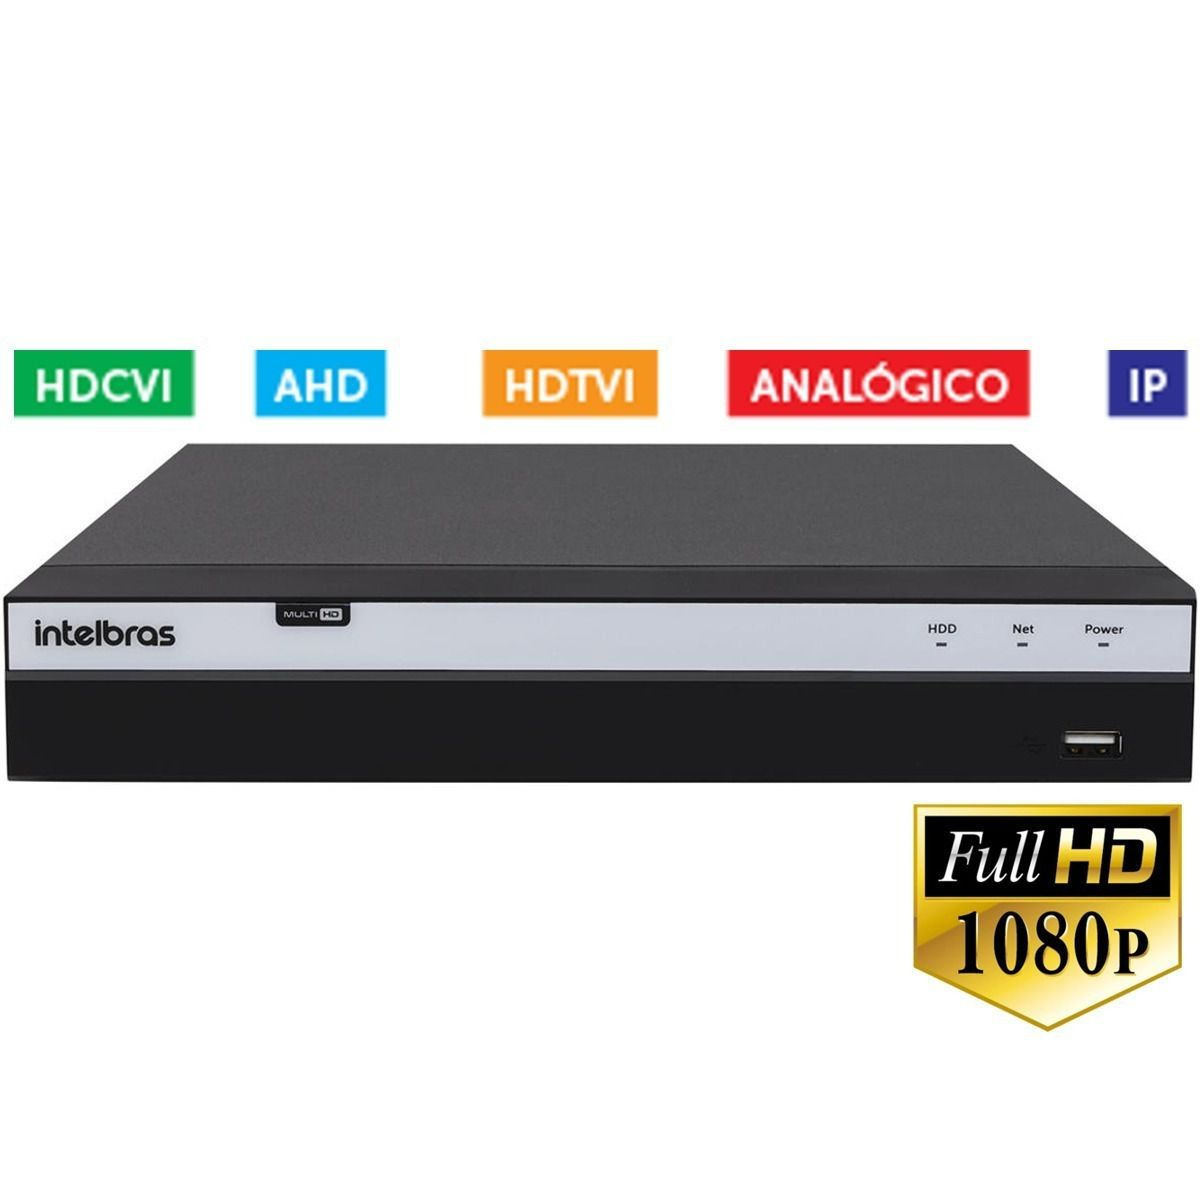 Dvr Stand Alone 32 Ch Multi HD + HD 4 TB Mhdx 1032 Intelbras